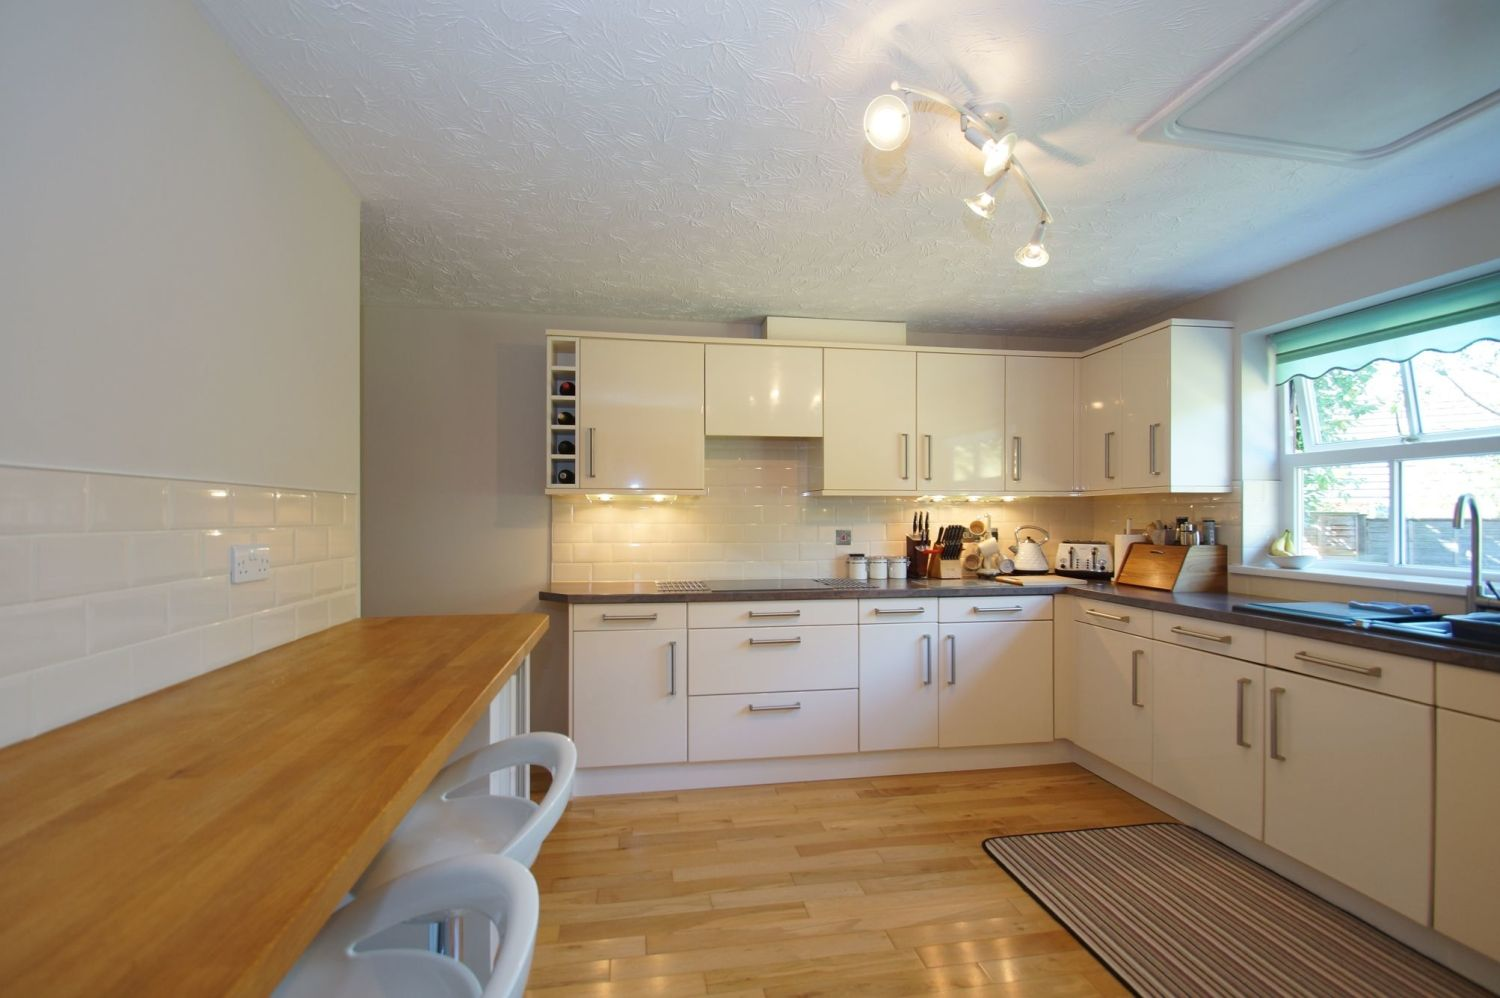 4 bed detached for sale in Acre Lane, Webheath  - Property Image 8